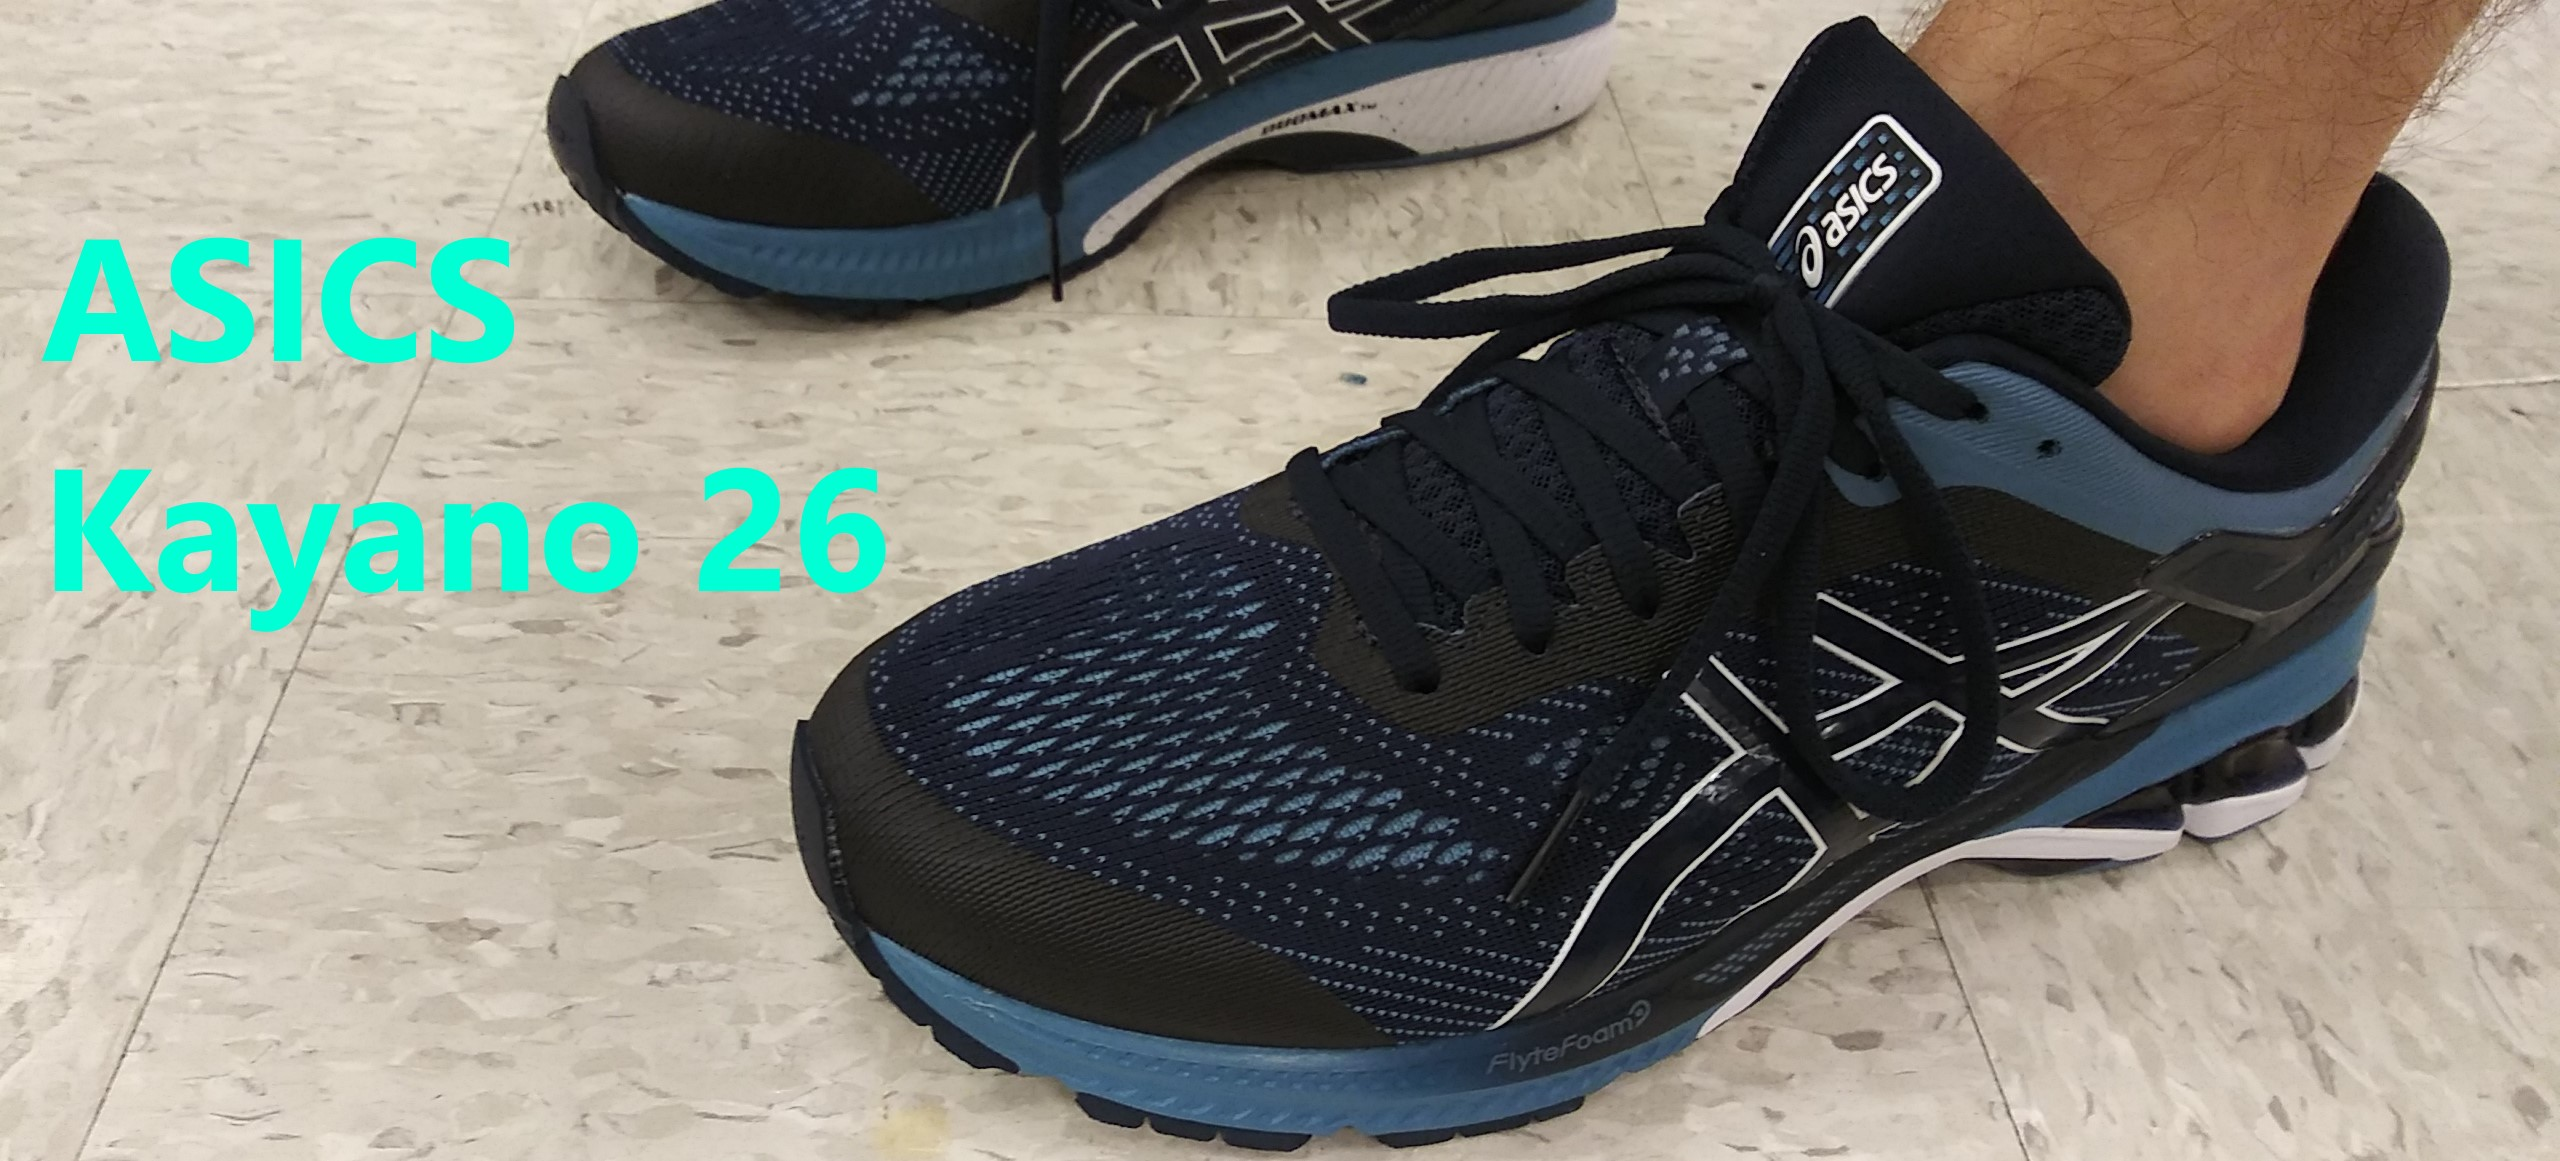 Asics Kayano 26 Review – Sun and Sole